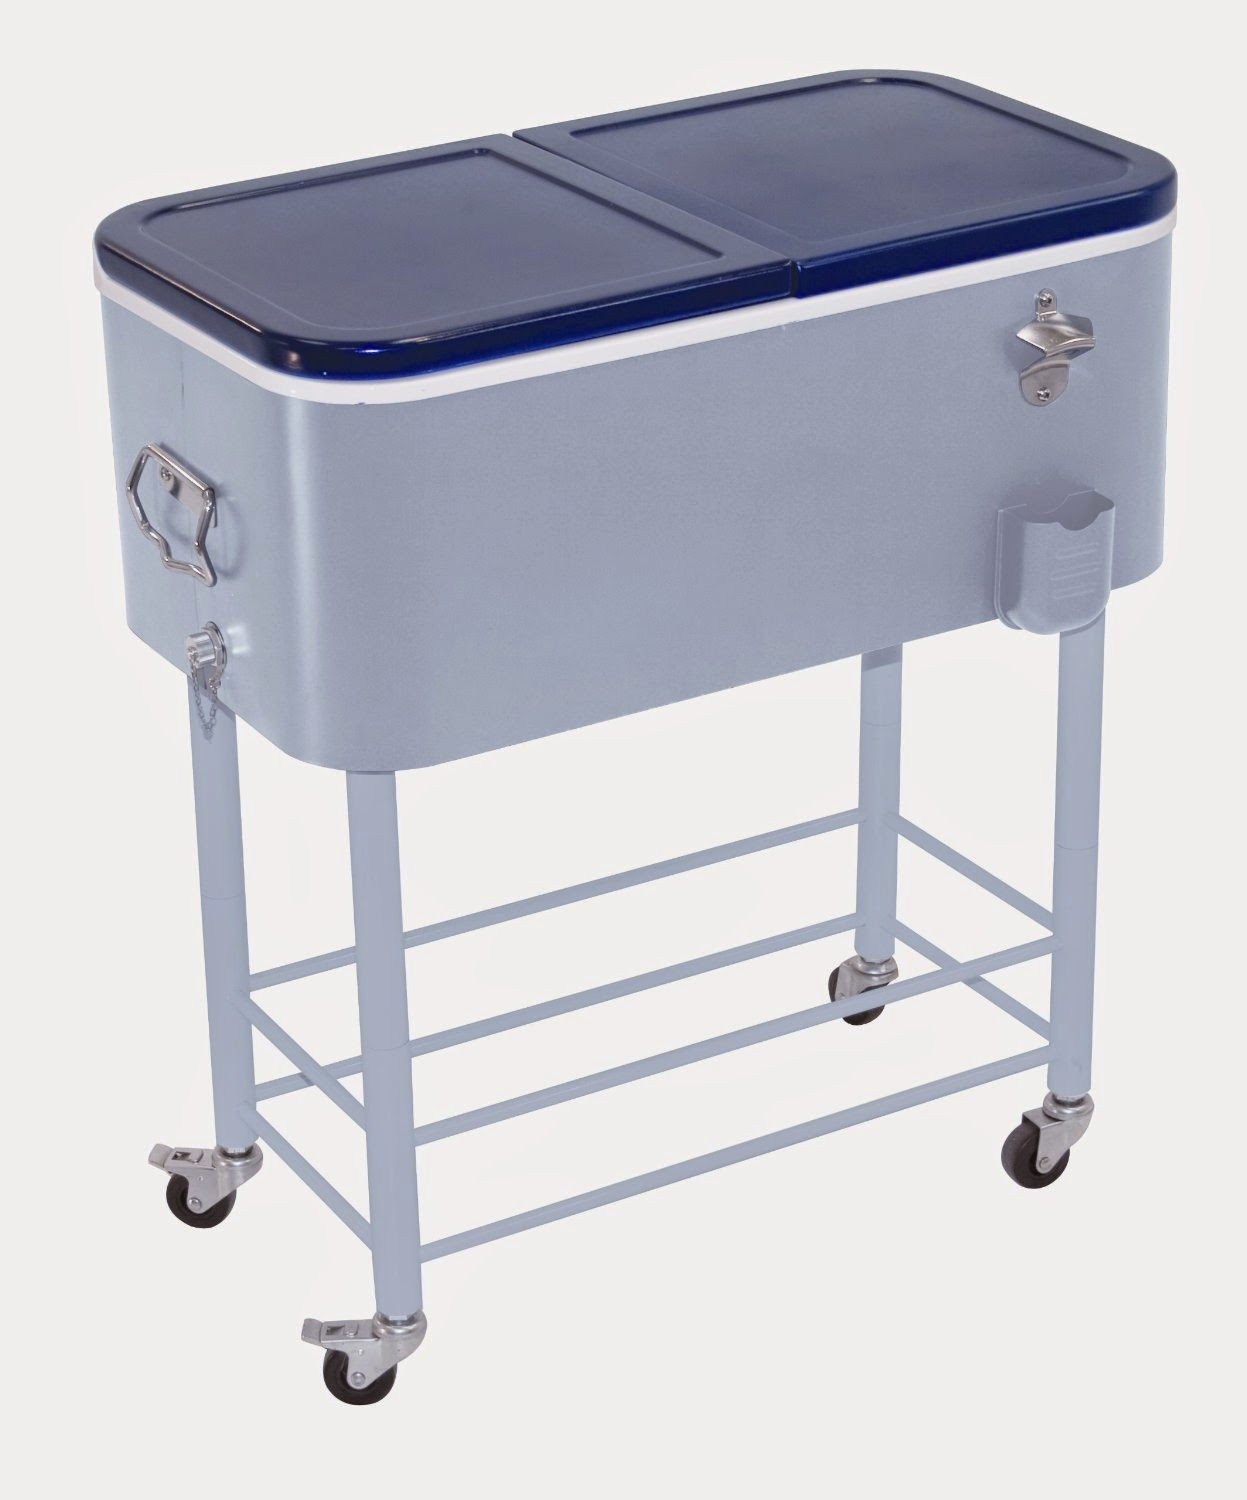 Nice Rio Brands Rolling Party Cooler